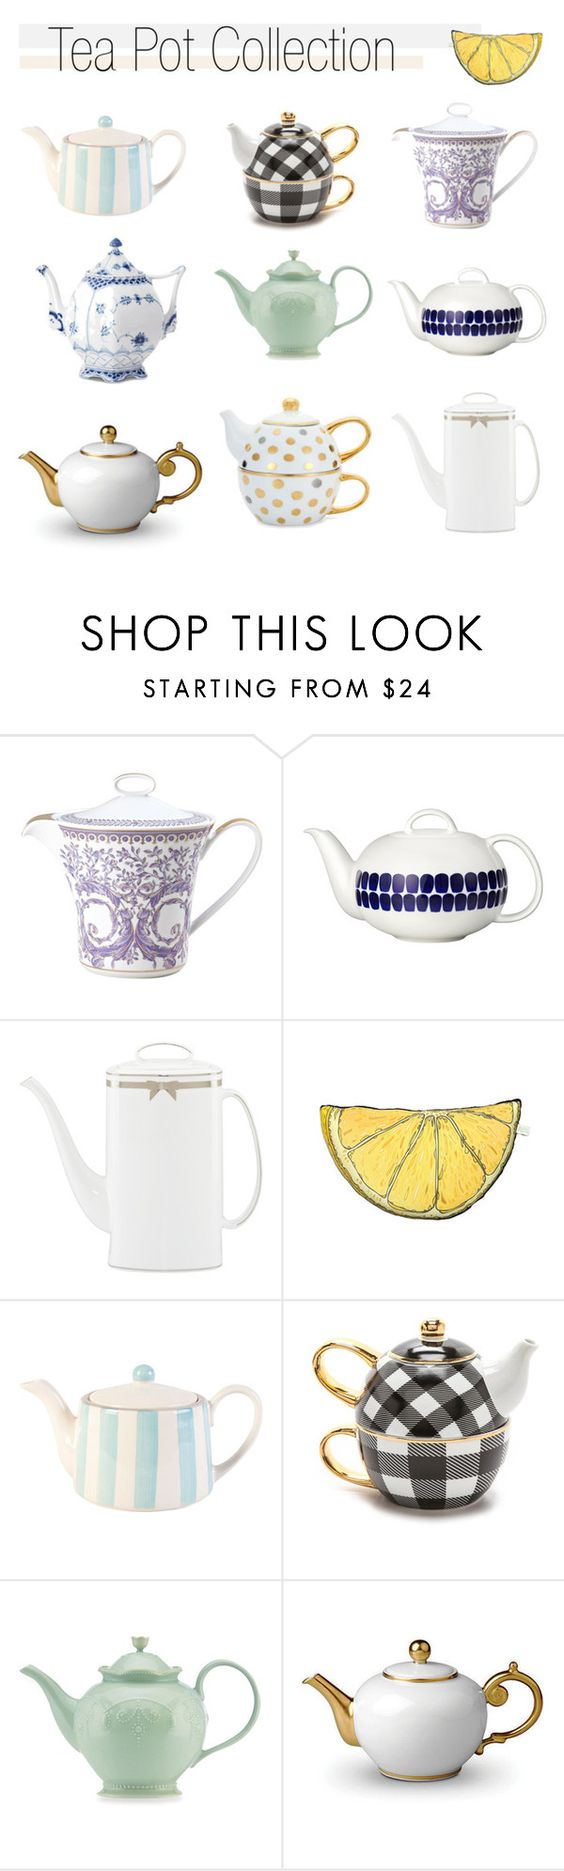 """""""Tea Time"""" by southernpearldesigns ❤ liked on Polyvore featuring interior, interiors, interior design, thuis, home decor, interior decorating, Versace, Arabia, Kate Spade en Silken Favours"""